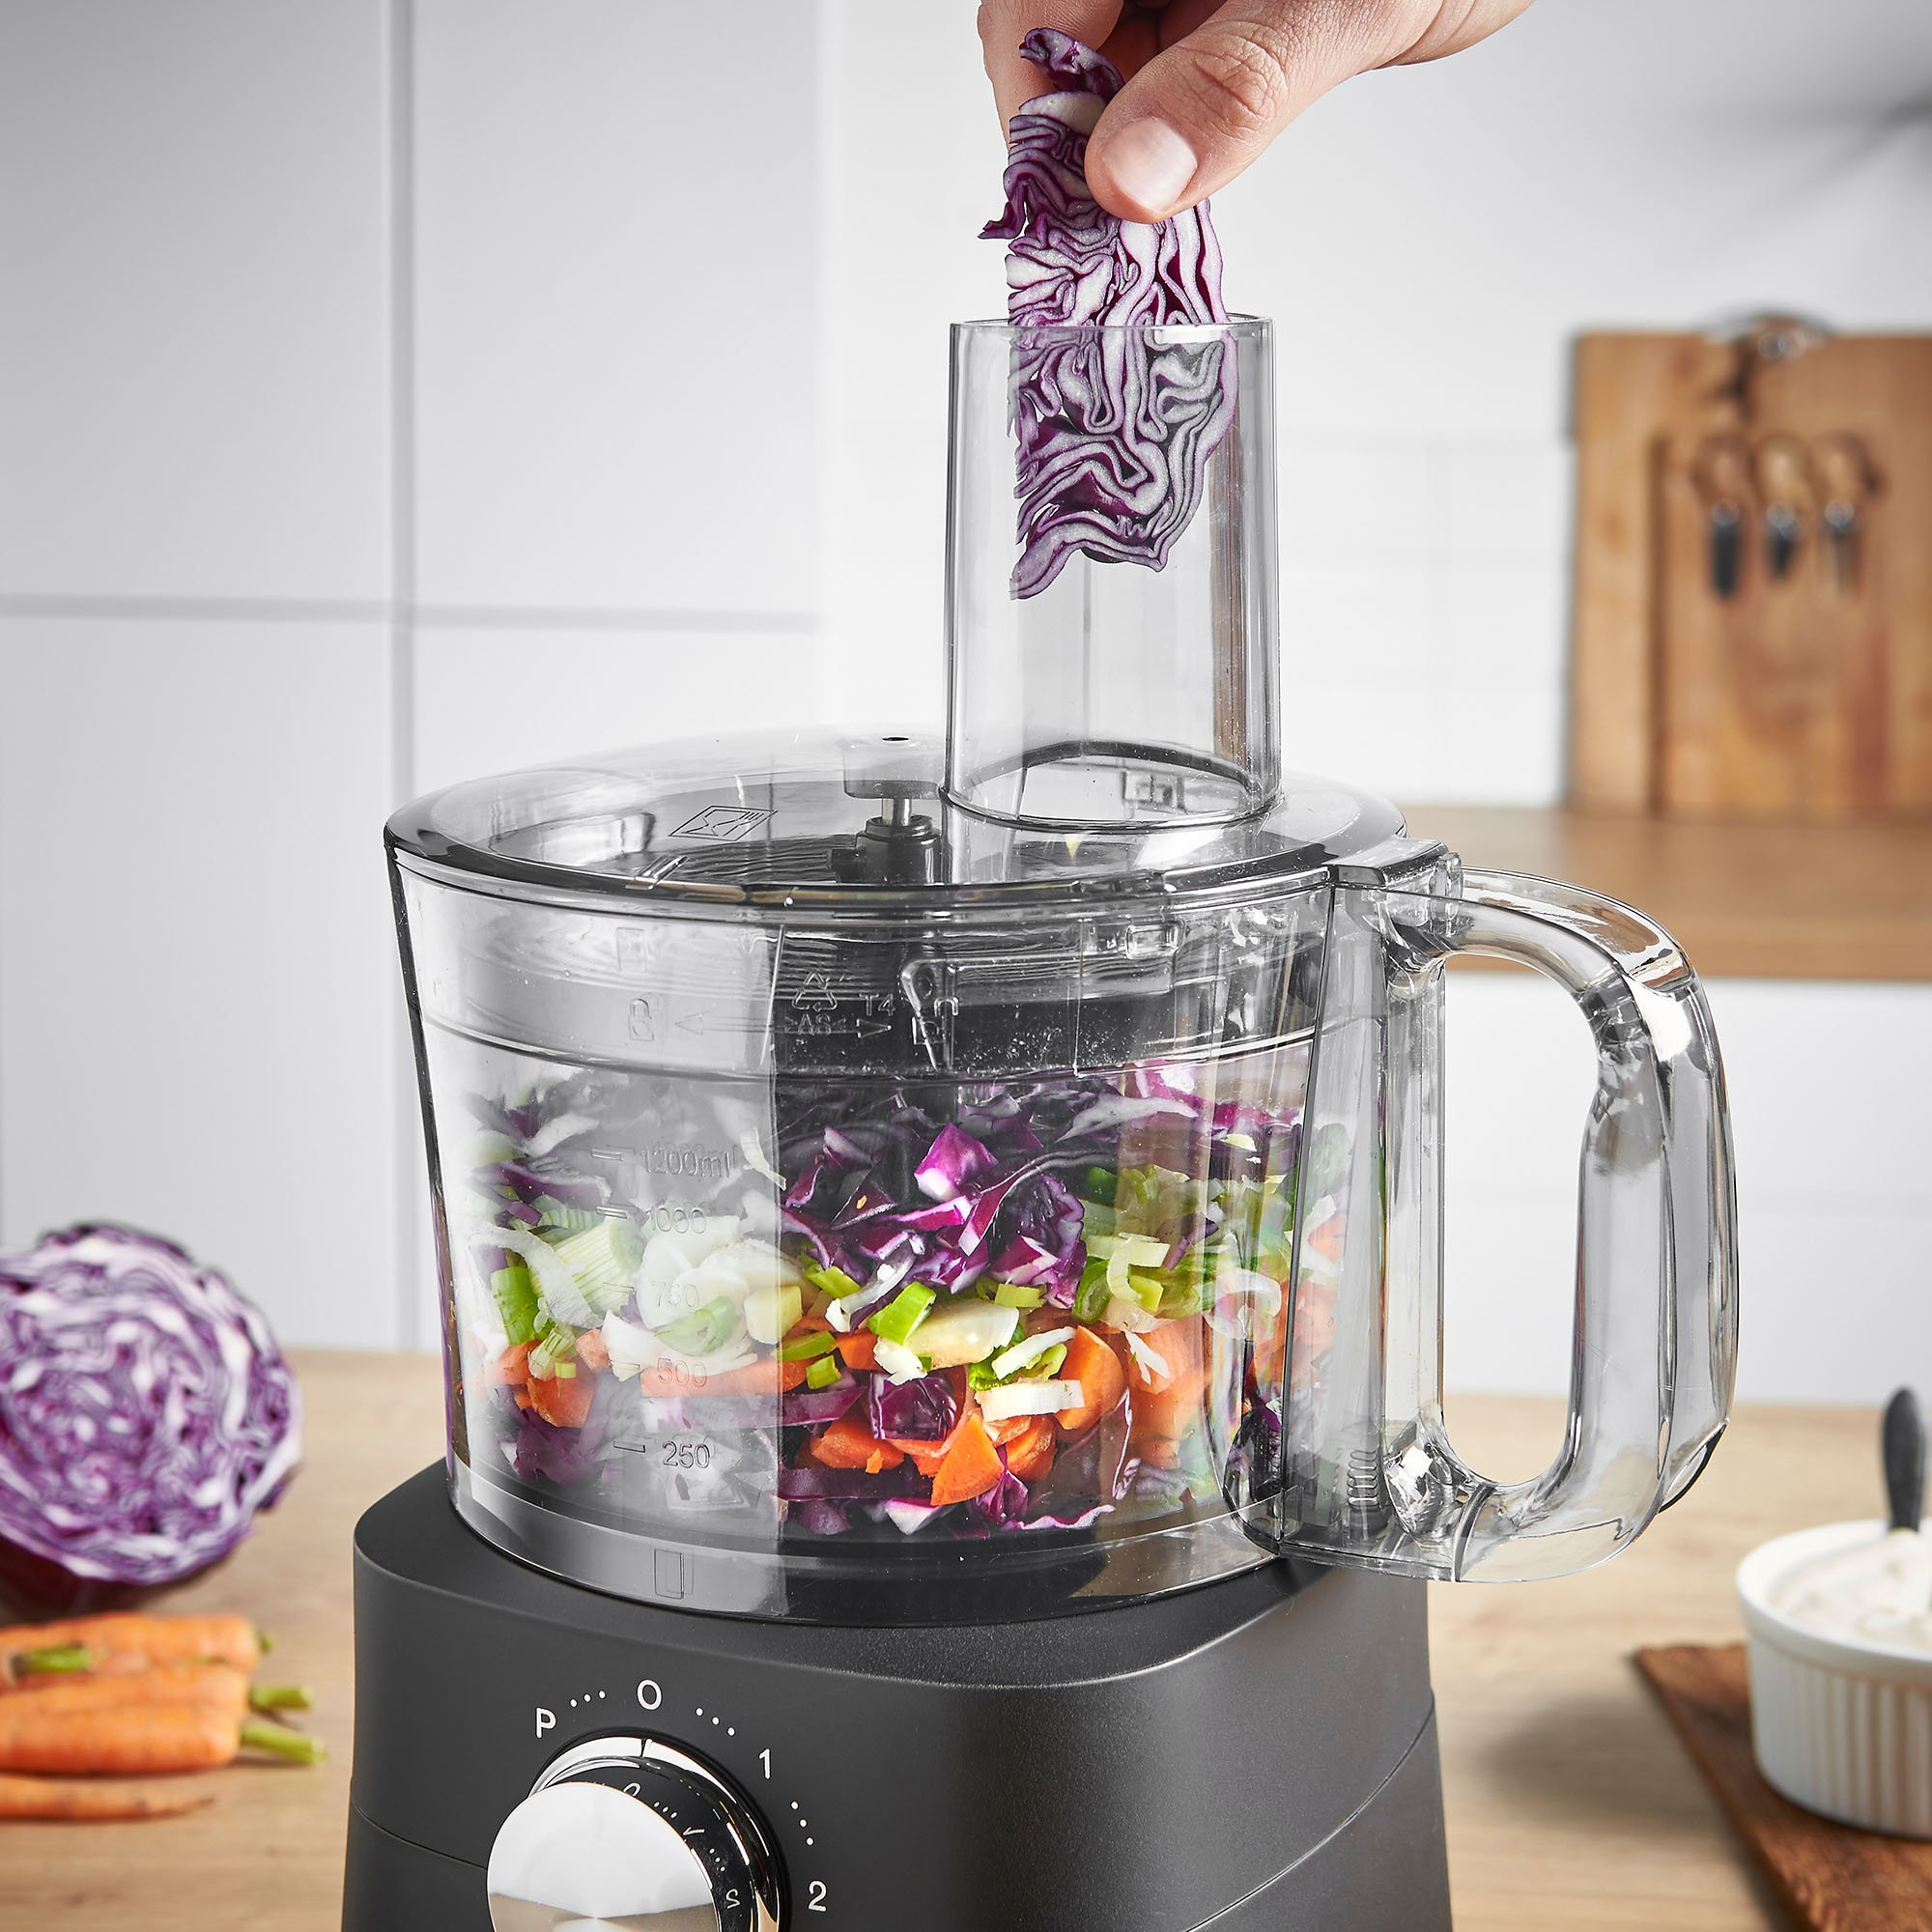 VonShef Food Processor, 8 Cup, Blender, Chopper, Multi Mixer Combo with Chopping Blade and Shredder Attachments, 500 Watts by VonShef (Image #3)